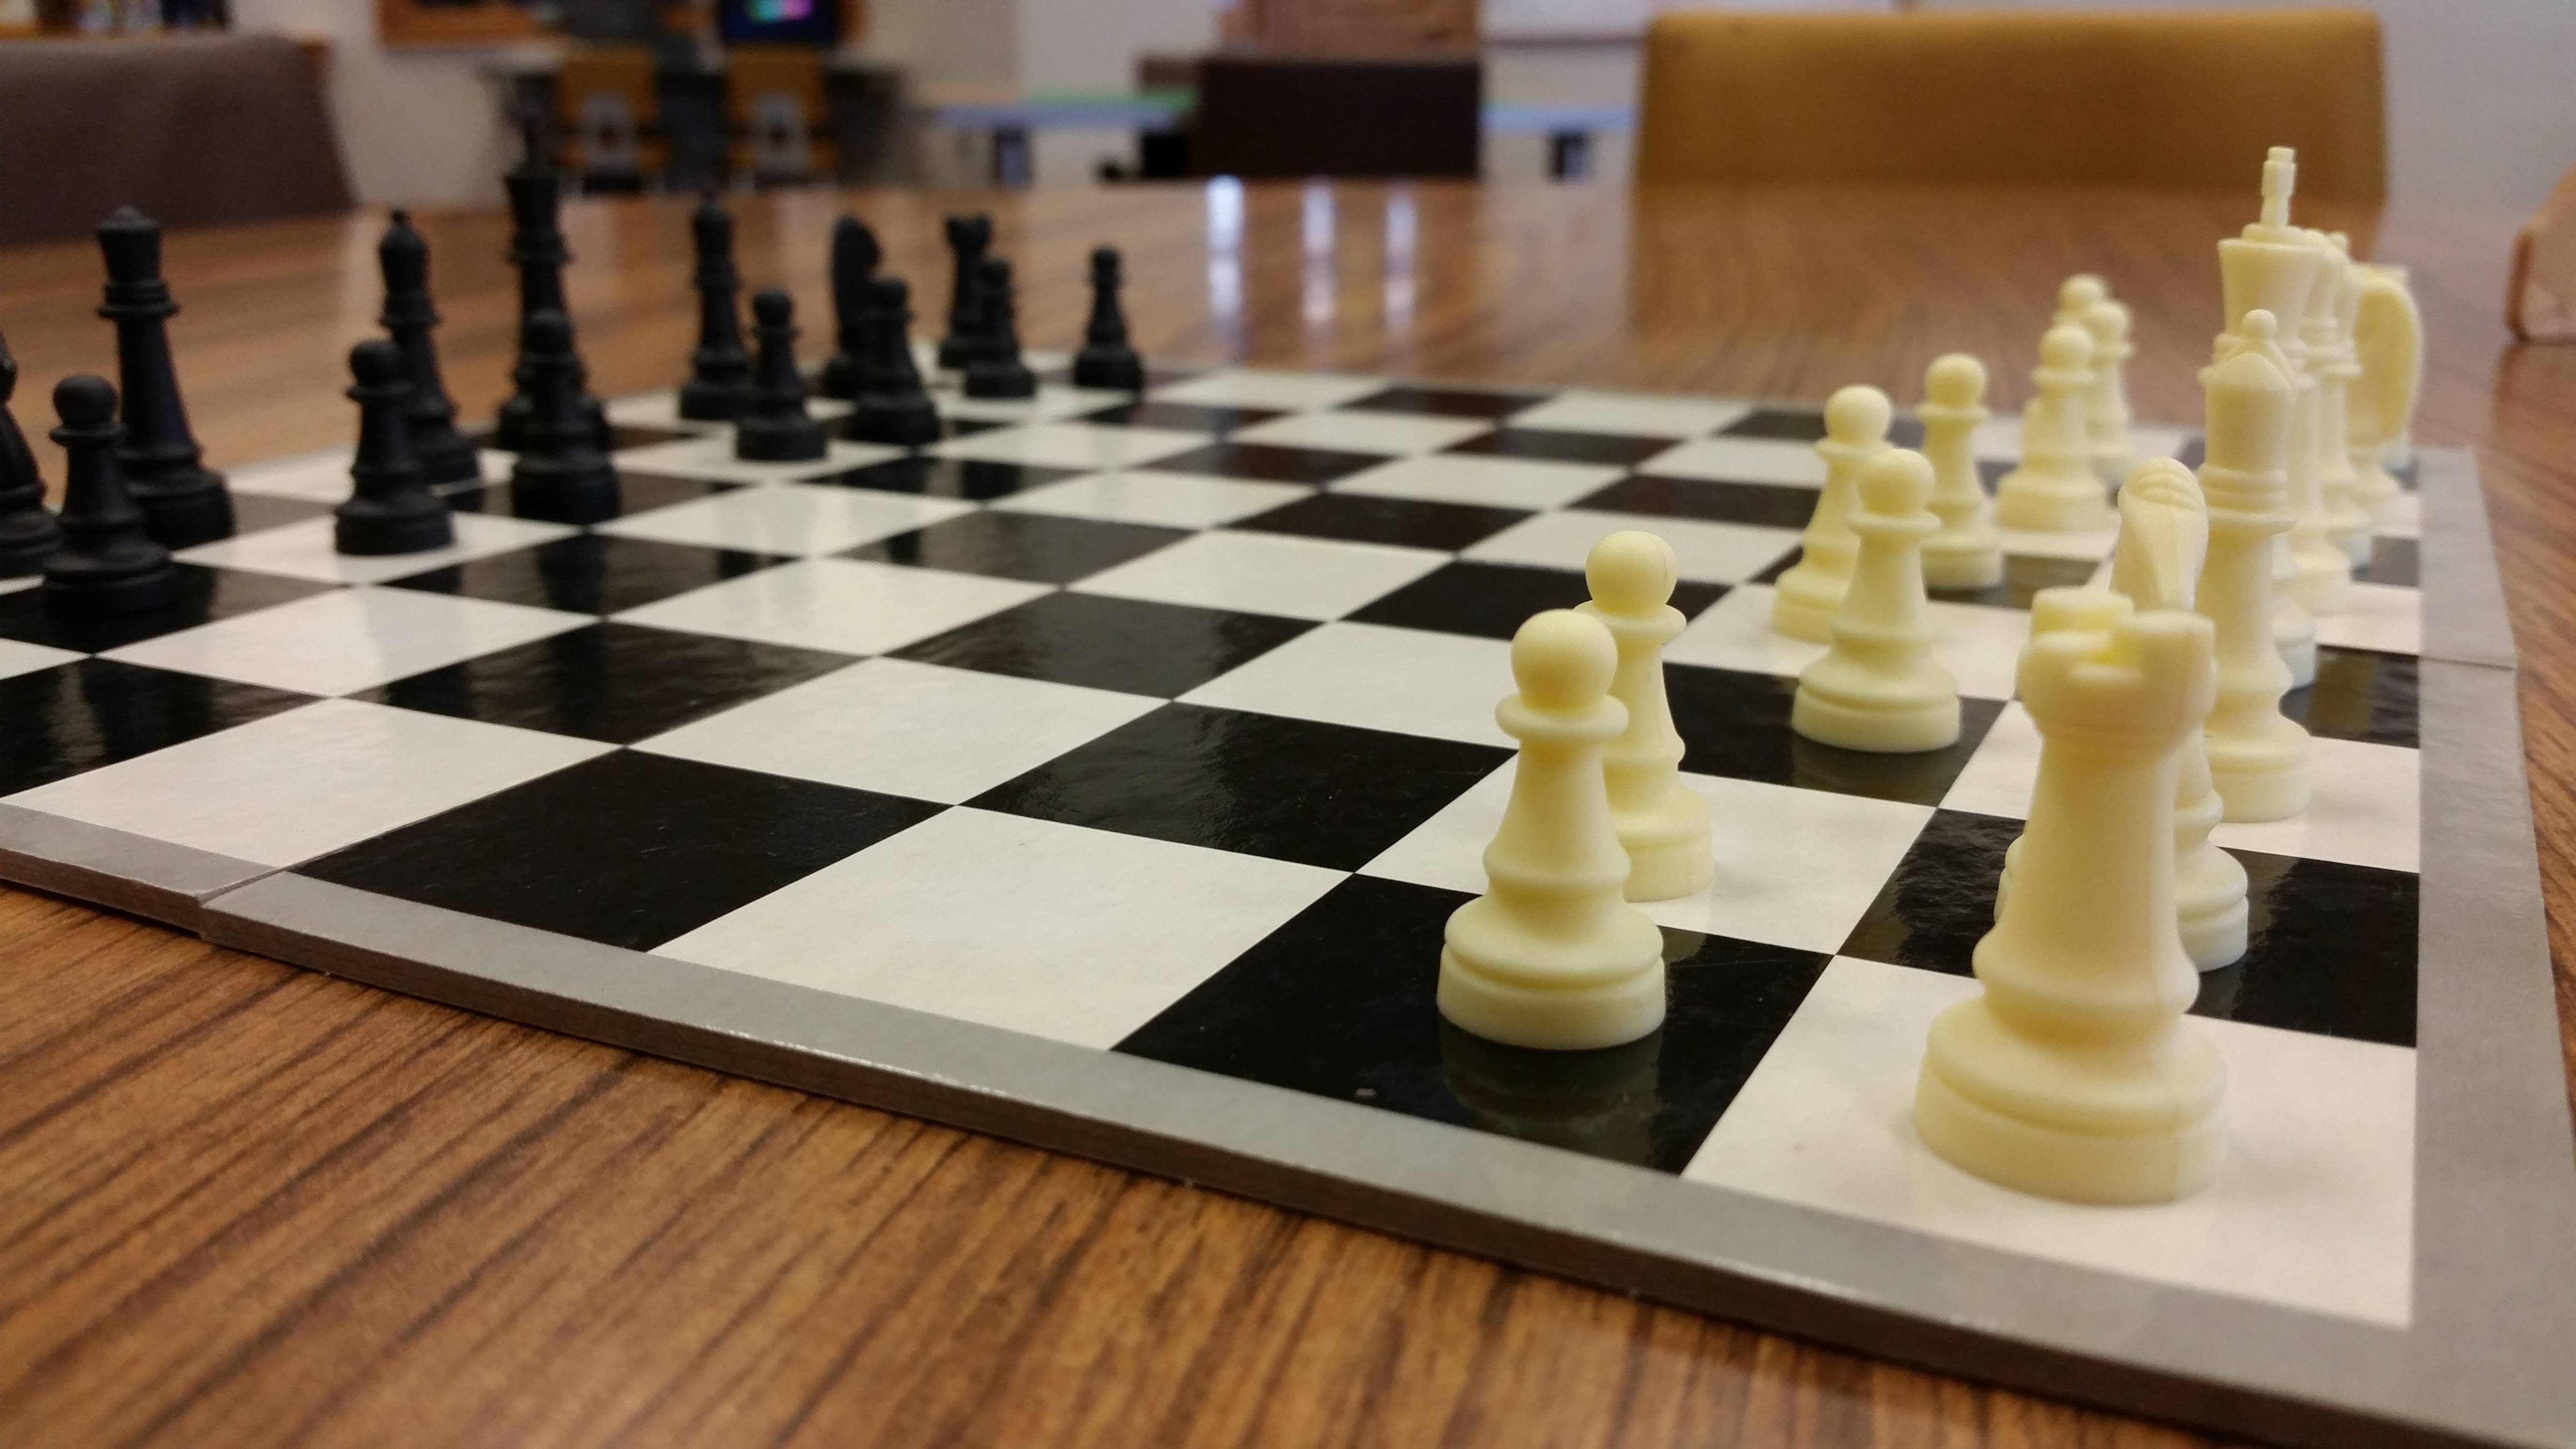 Chess club begins in September! Registration for children in 3rd through 8th grade begins September 1st, and registration for adults 18+ begins September 19th. For more information on when chess club begins, click the photo or visit our Facebook page.